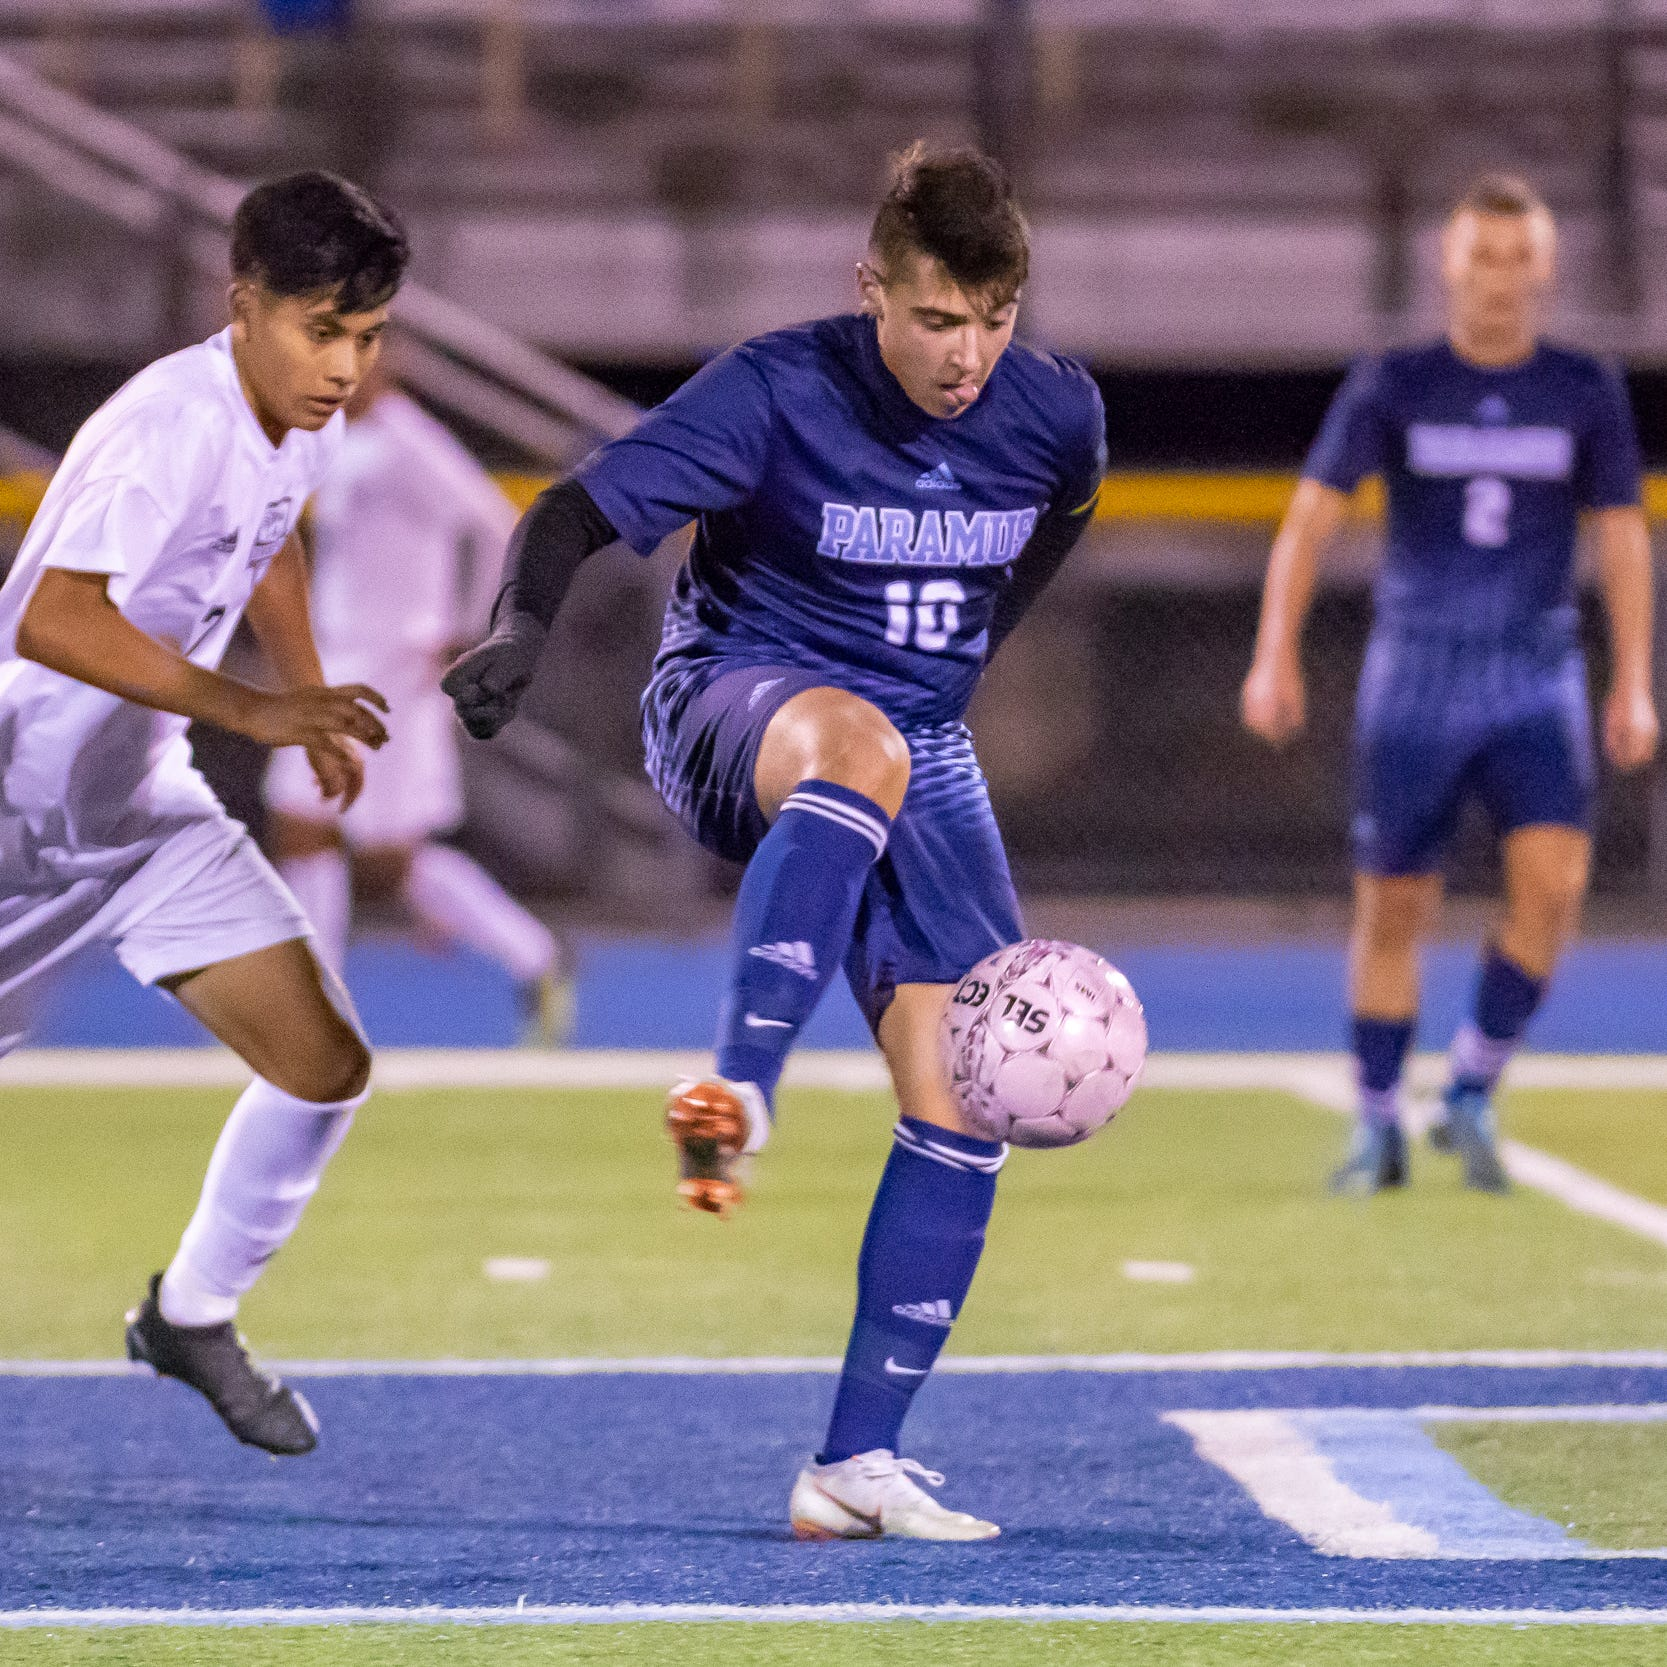 Boys soccer: Who will move on to the county finals?